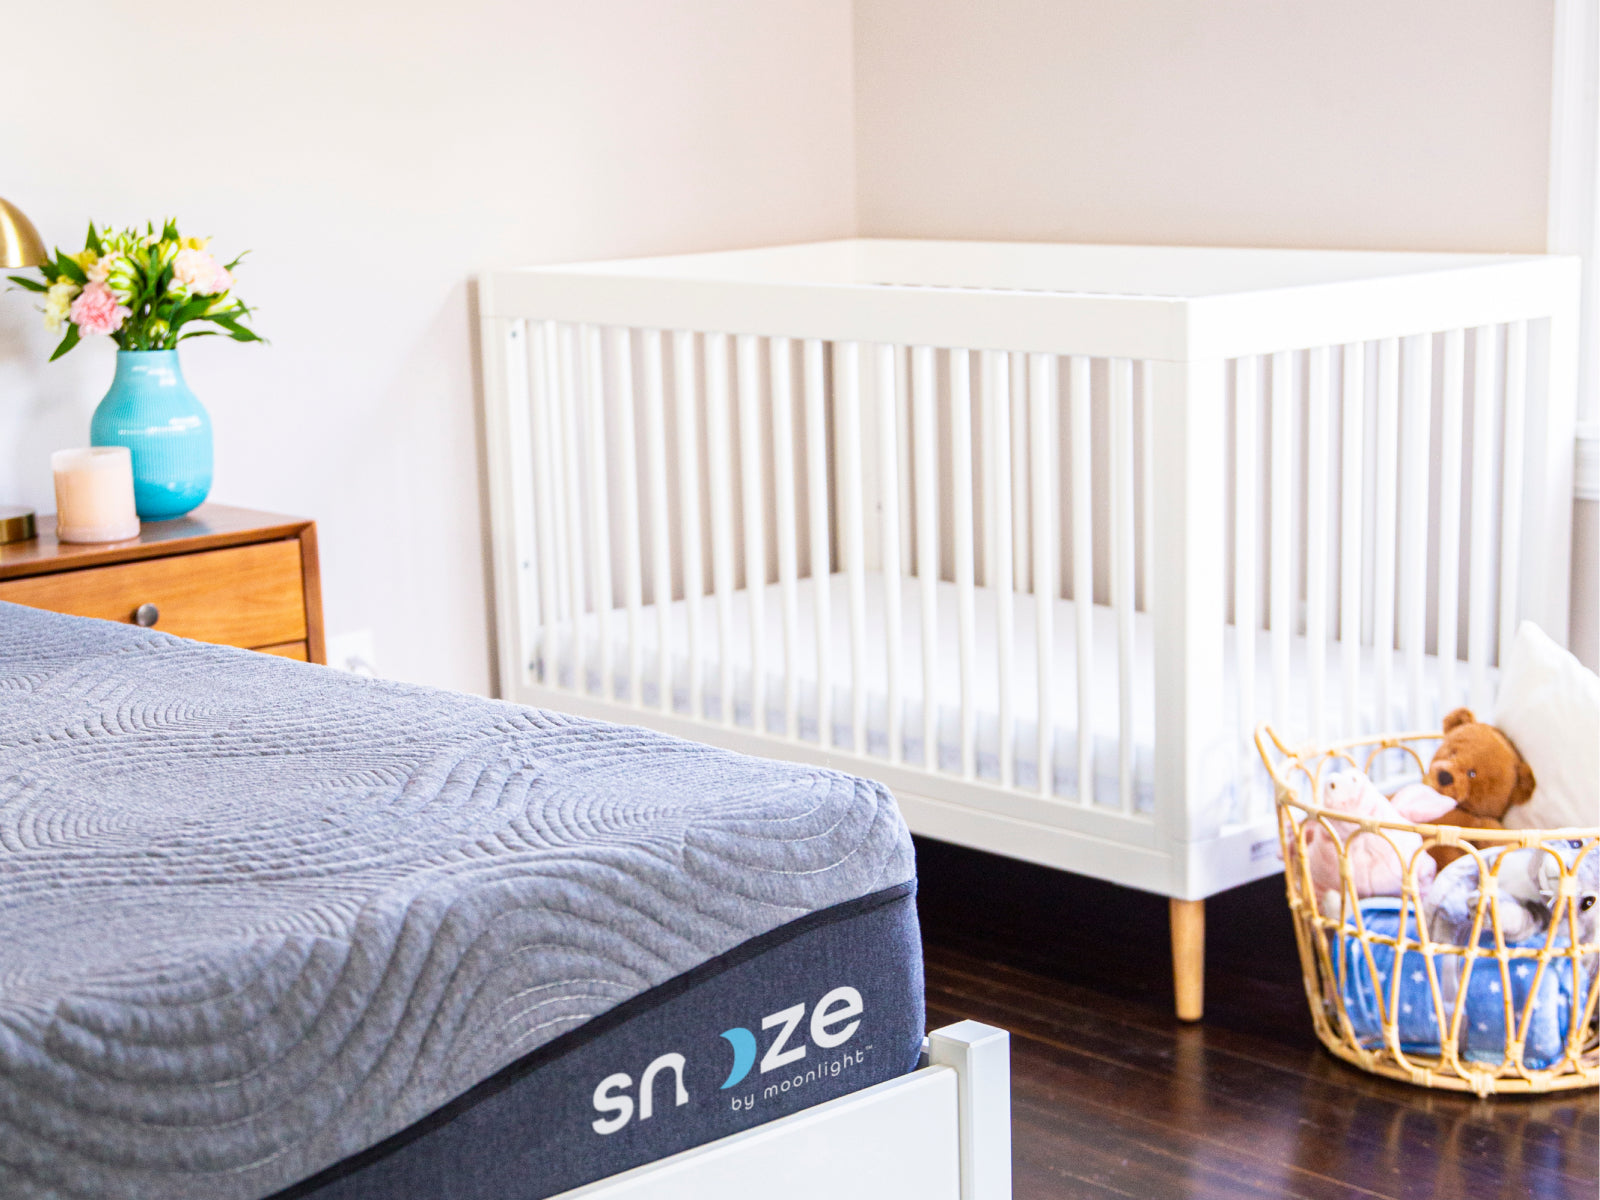 Snooze Mattress Twin XL